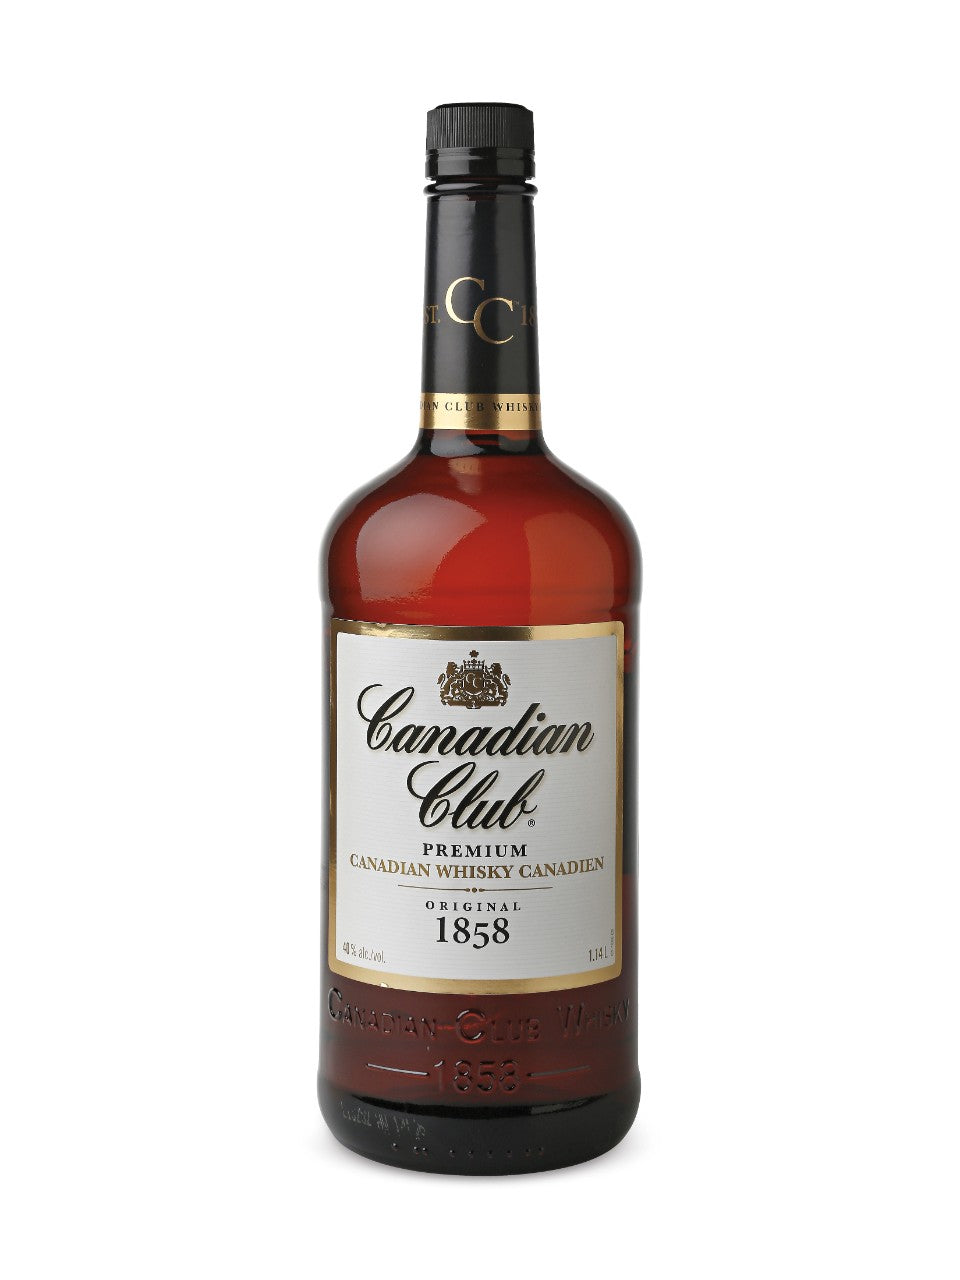 CANADIAN CLUB 1140ml